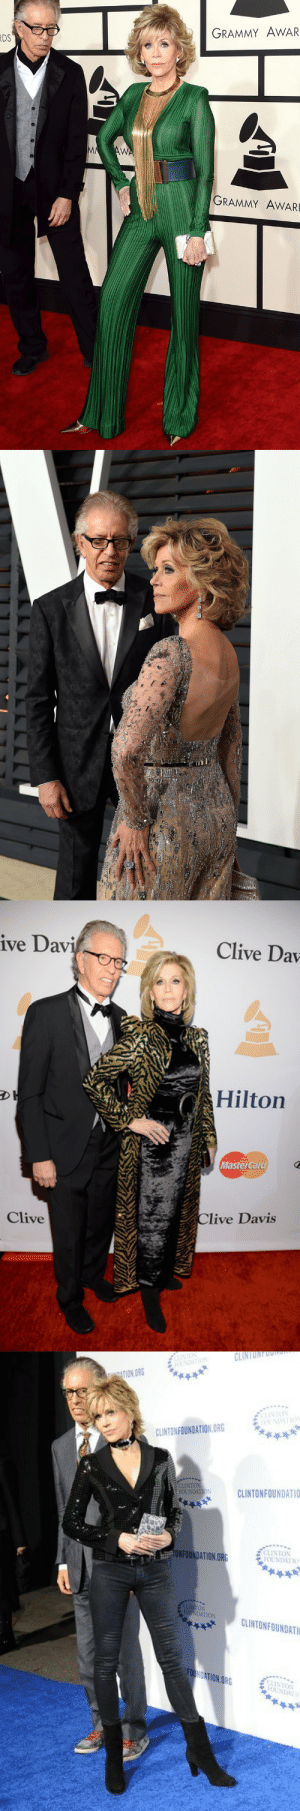 elizabitchtaylor: moodboard: Jane Fonda absolutely slaying it while her boyfriend stands awkwardly in the background: GRAMMY AWAR  DS  GRAMMY AWARD   ive Dav  Clive Dav  Hilton  MasterCard  Clive  live Davis   o CLINTONFOONO  FOUNDHTIO  TION ORG  IST(パ  CLINTON FOUNDATION ORG  FOUNDATIOSCLINTONFOUNDATIO  ECLINTON  NFOUNDATION.ORG  AtON CLINTONFOUNDATI  CLINTONFOUNDATI  FOt  NTON  OUNDA elizabitchtaylor: moodboard: Jane Fonda absolutely slaying it while her boyfriend stands awkwardly in the background